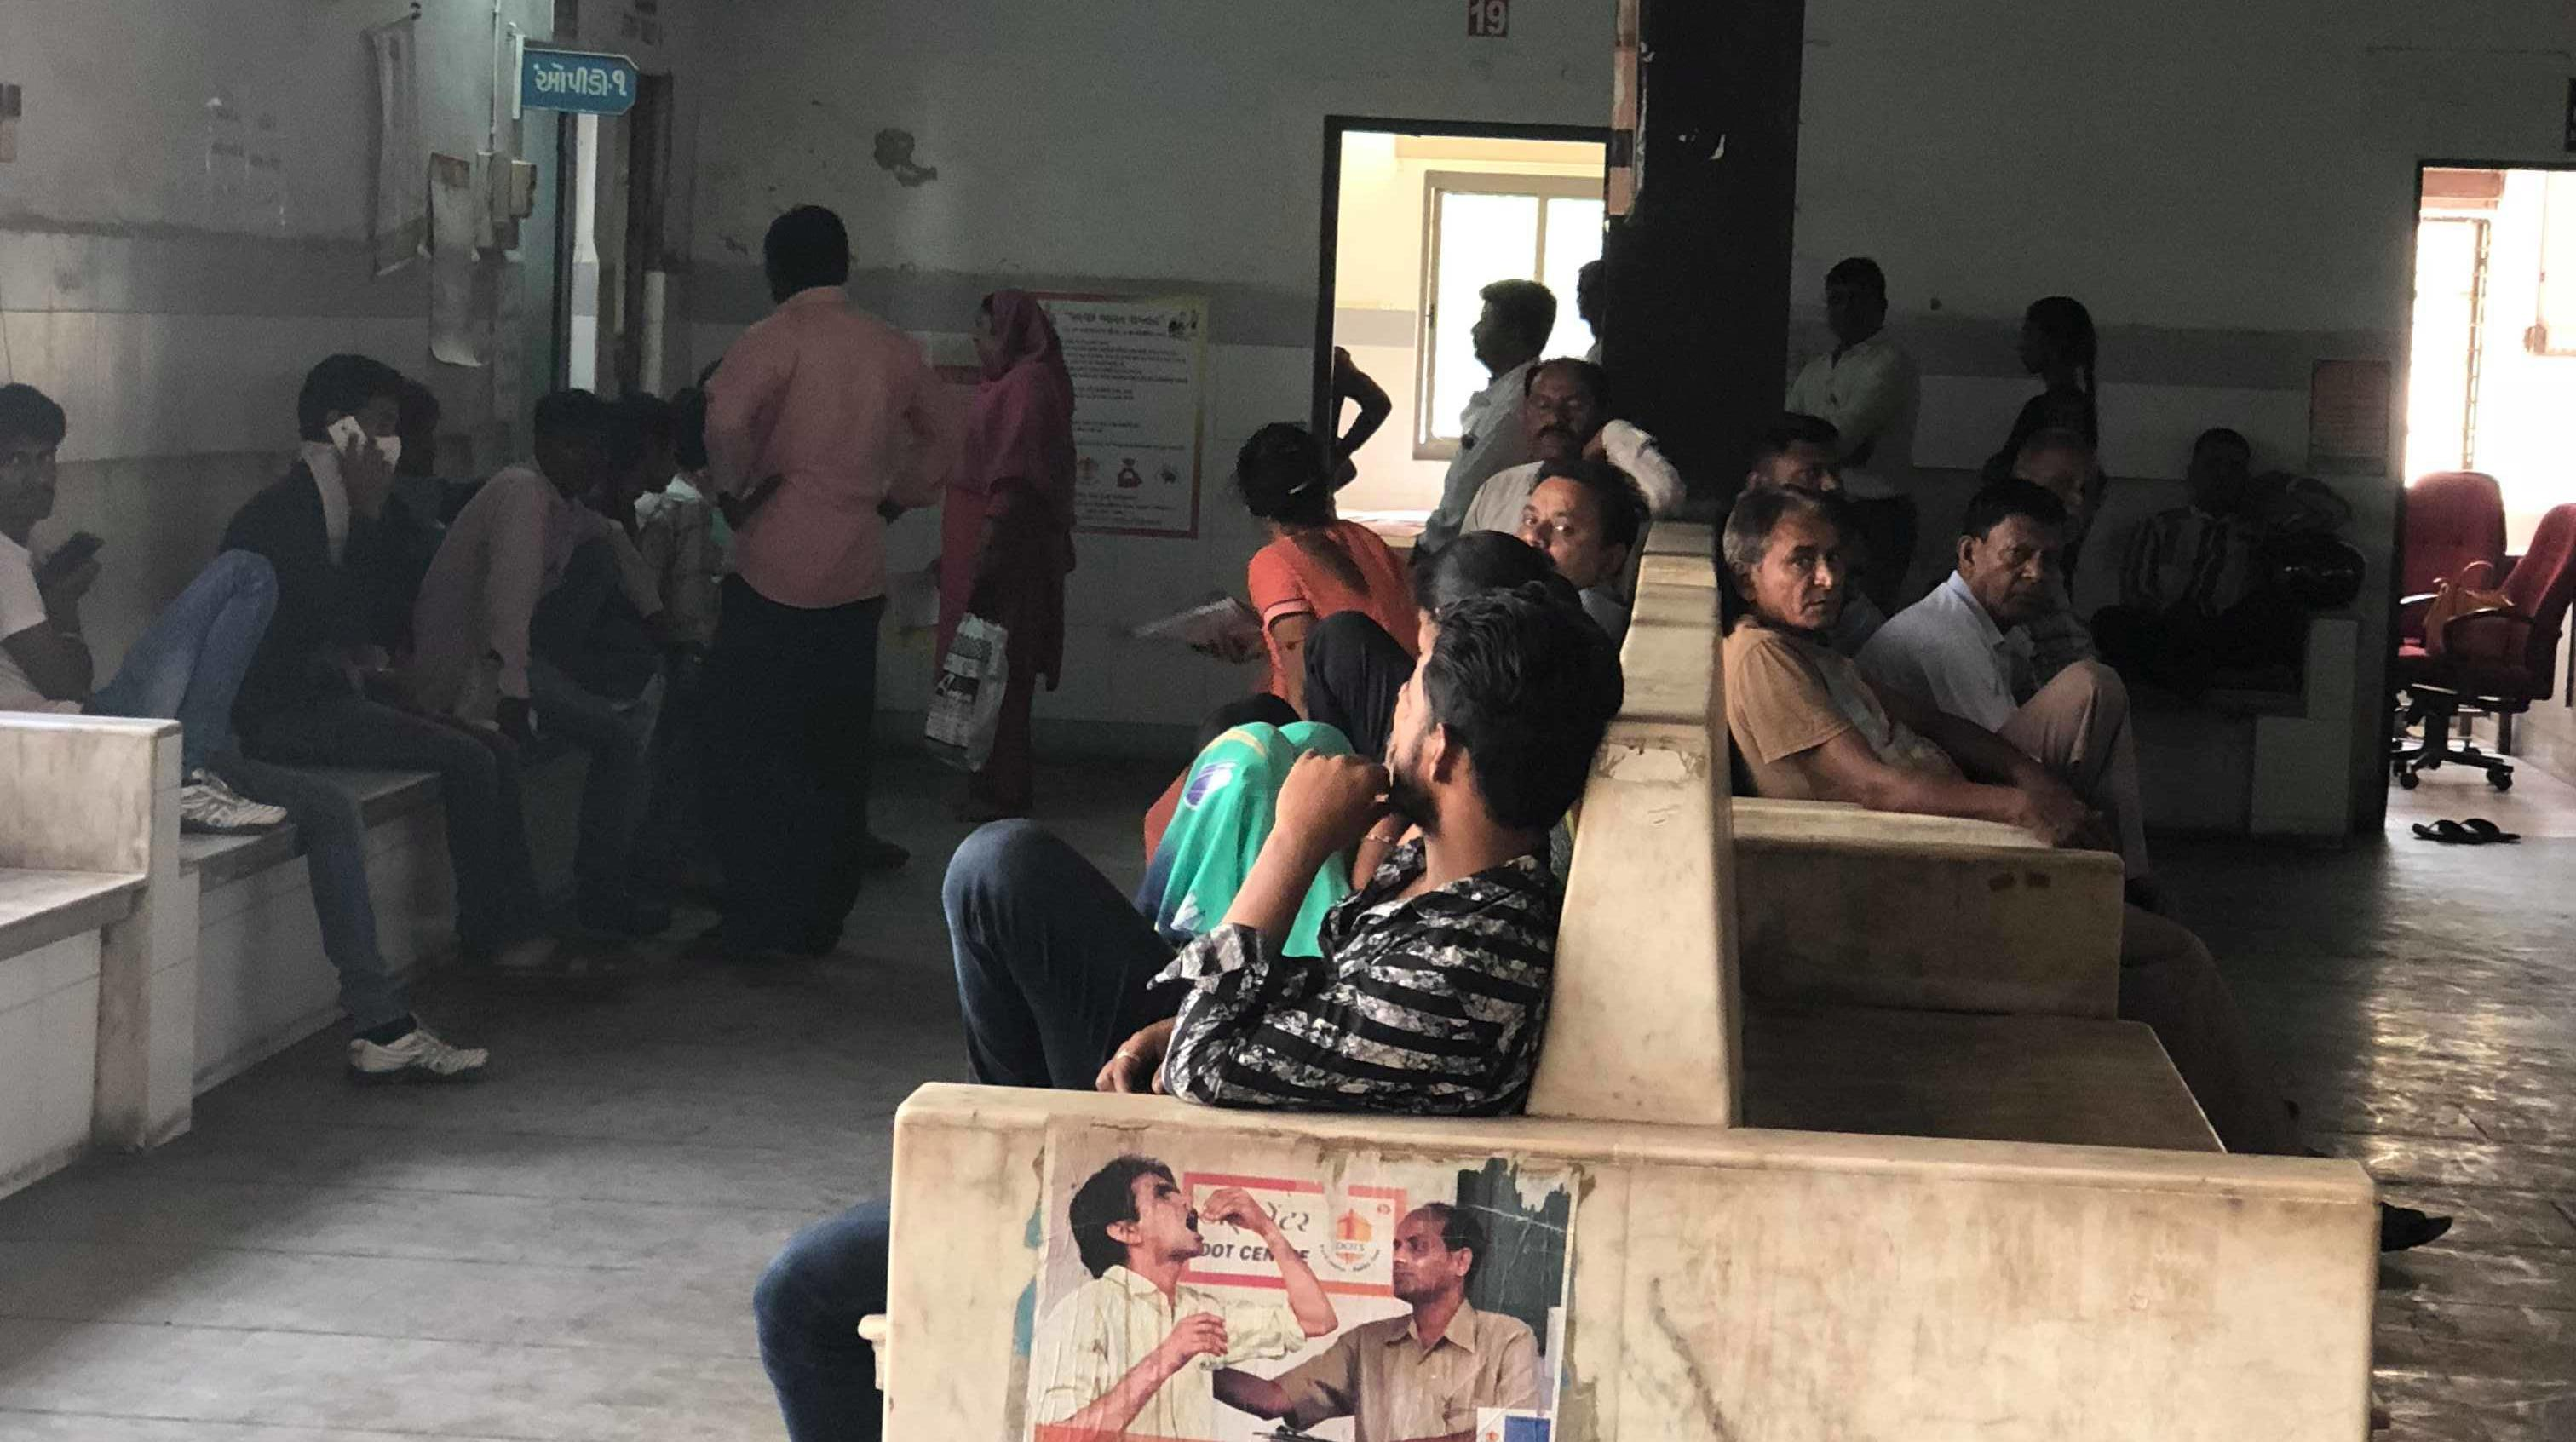 TB waiting room of a hospital in Ahmedabad, India credit Laura Rosu